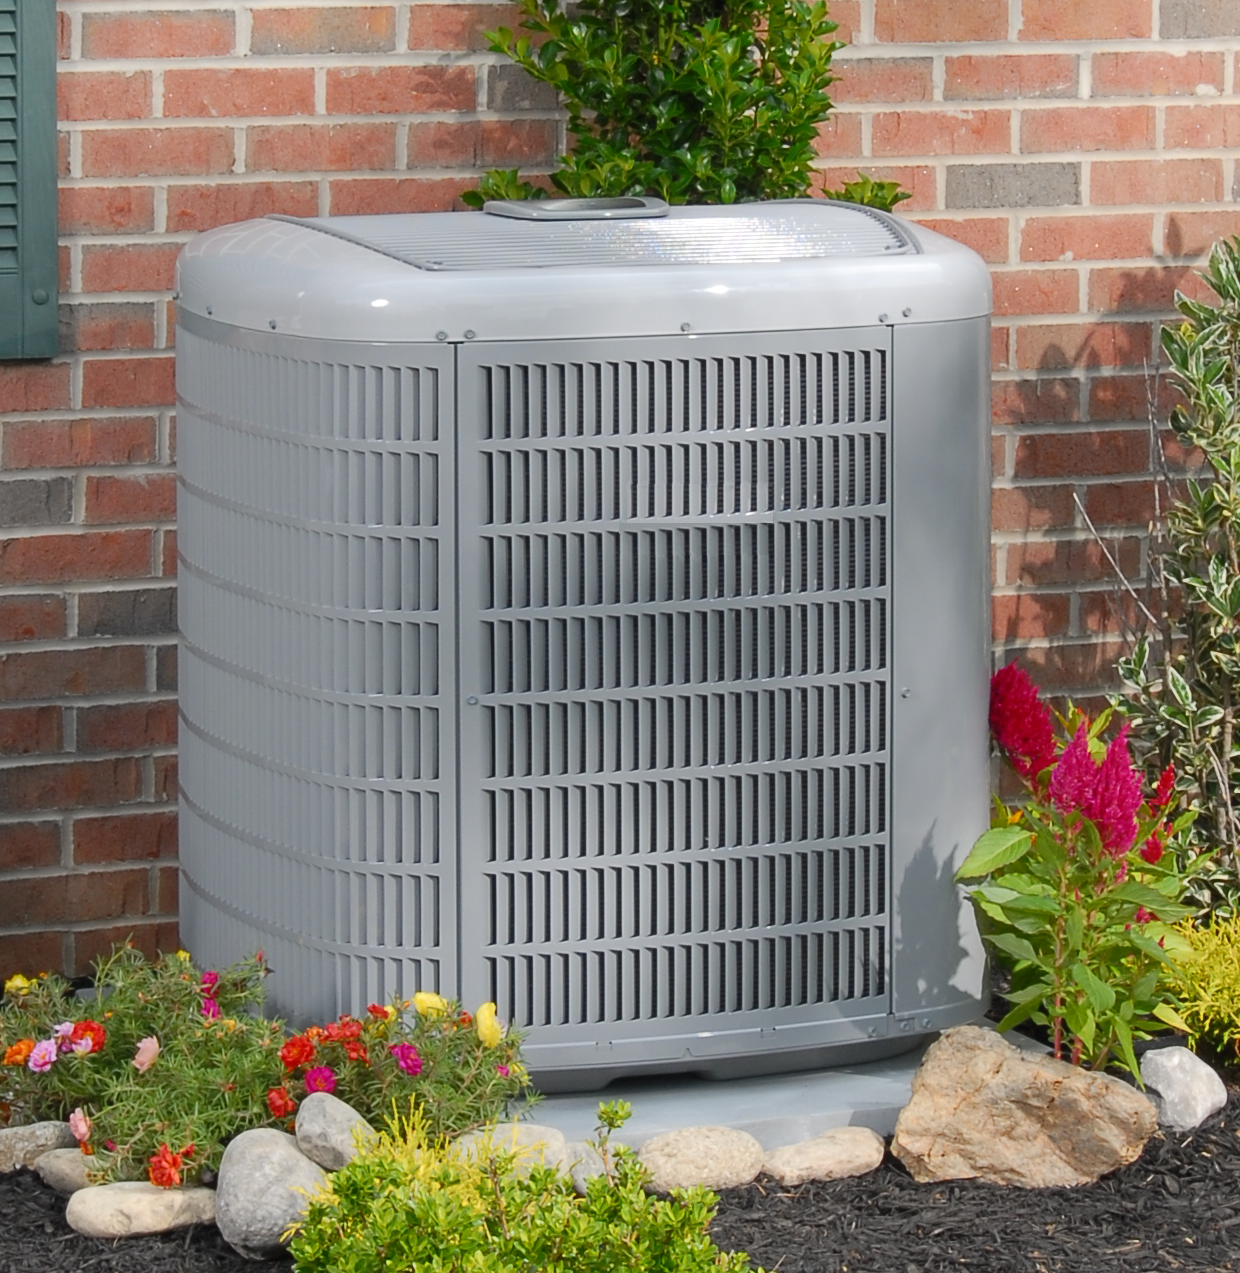 Repair or replace my old Air Conditioner? DeMark Home